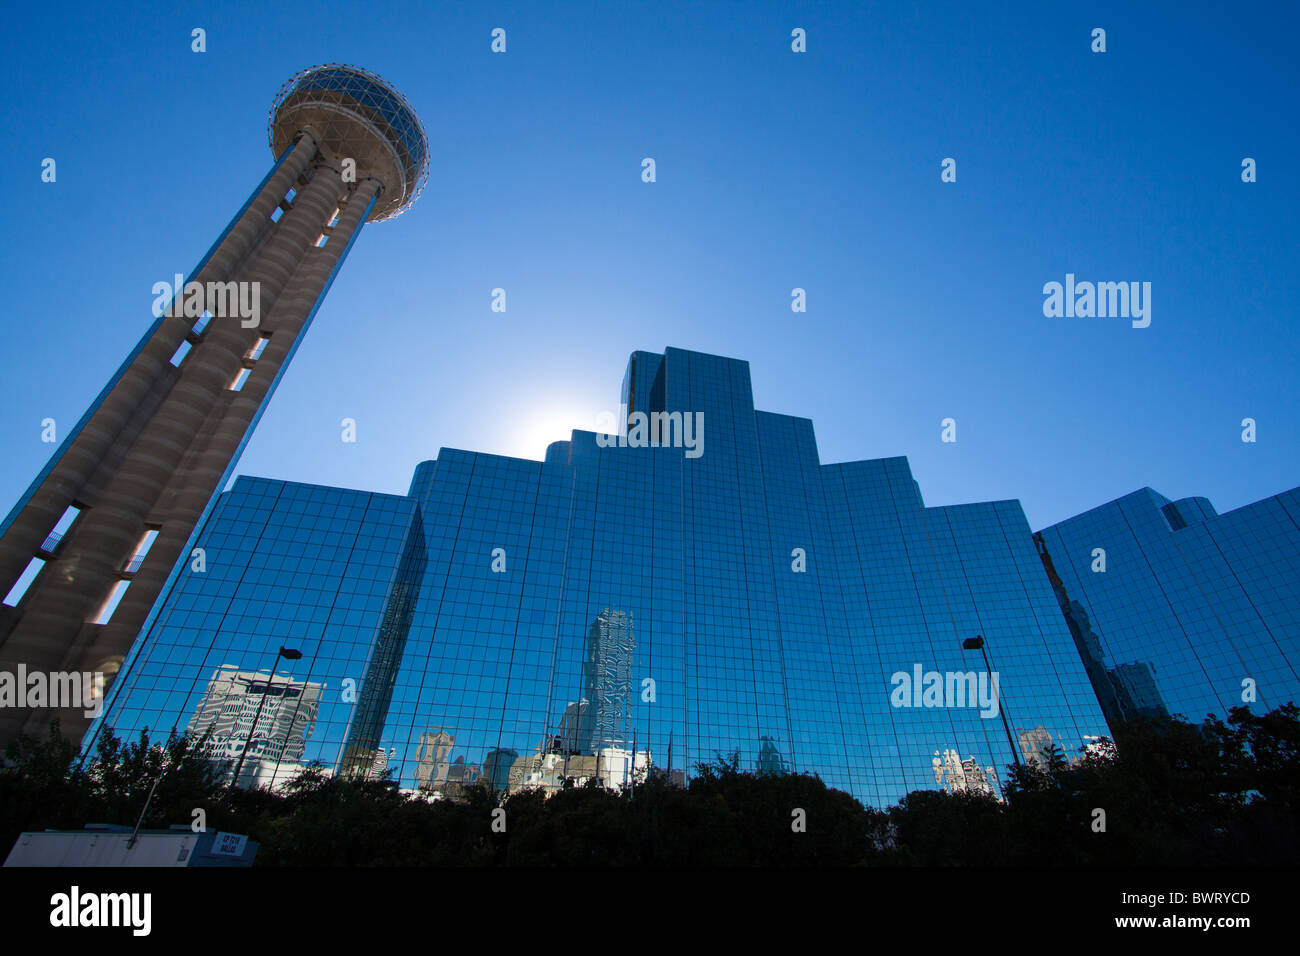 Reunion Tower in Dallas, Texas is silhouetted by the warm sunshine. - Stock Image